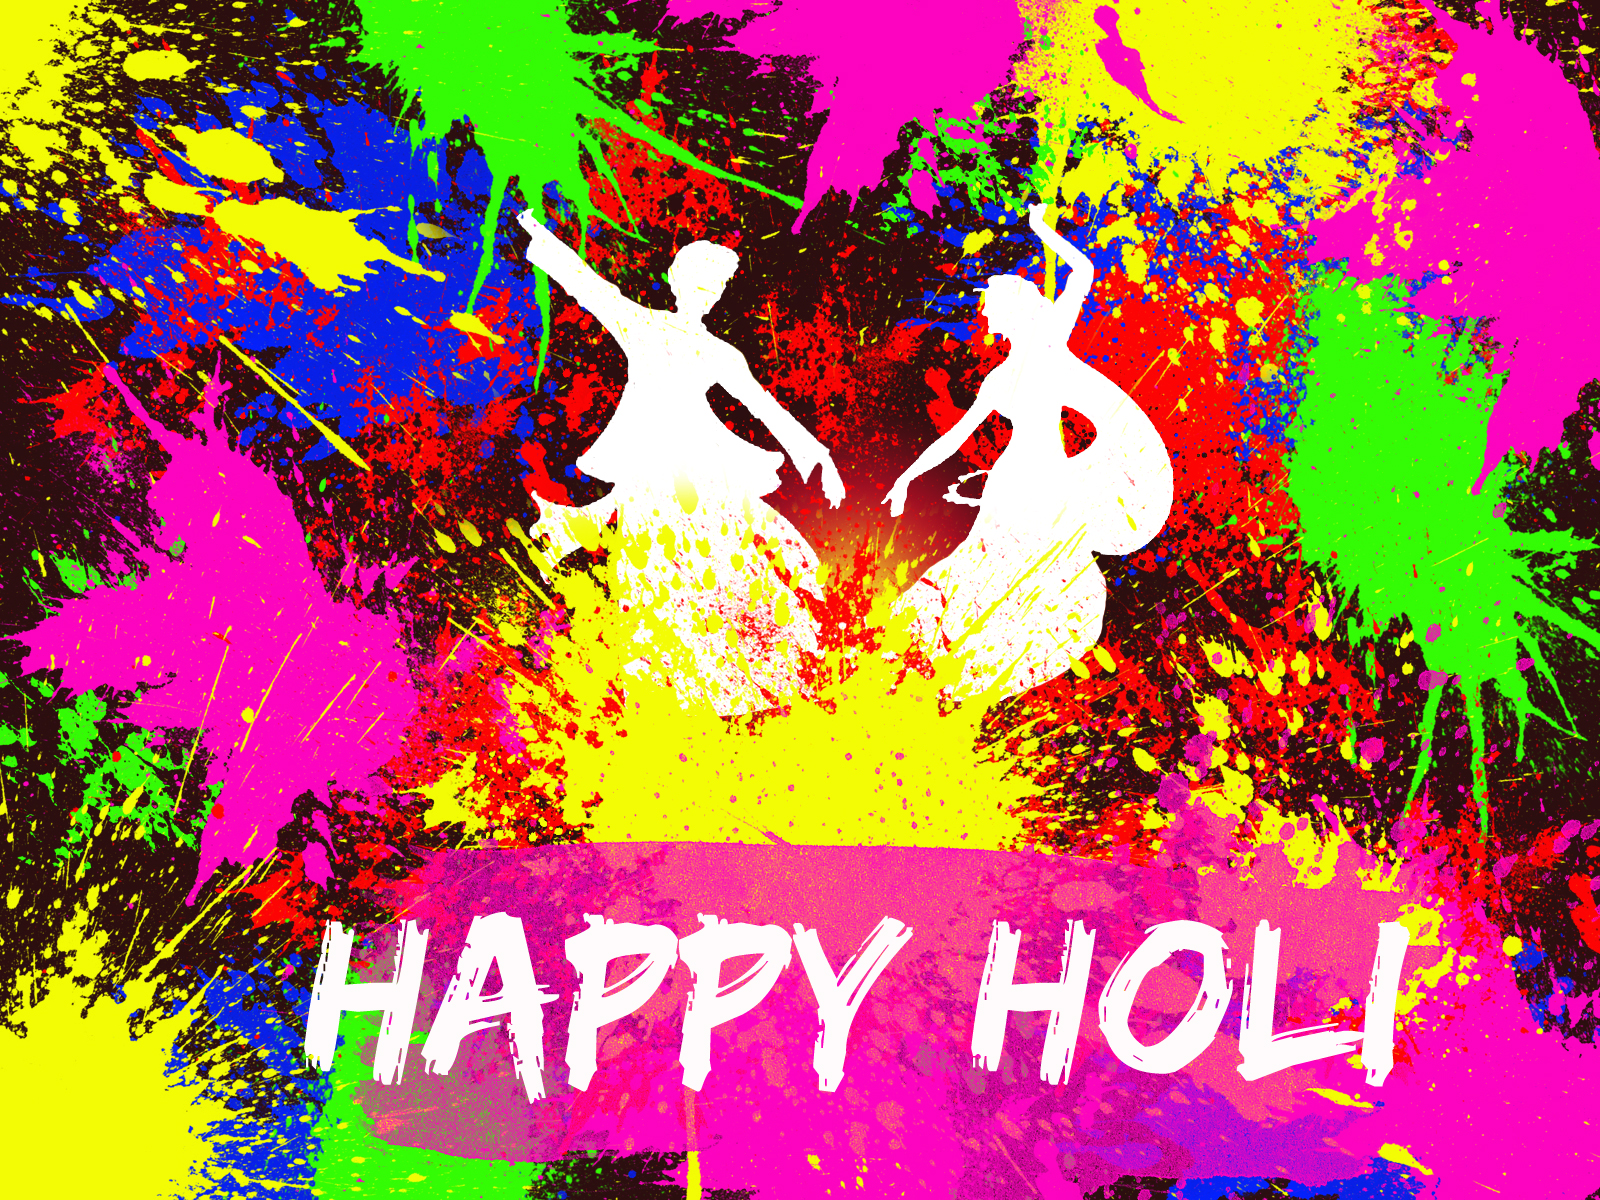 Webgerent wishes the holi (the festival of colors) 2016.